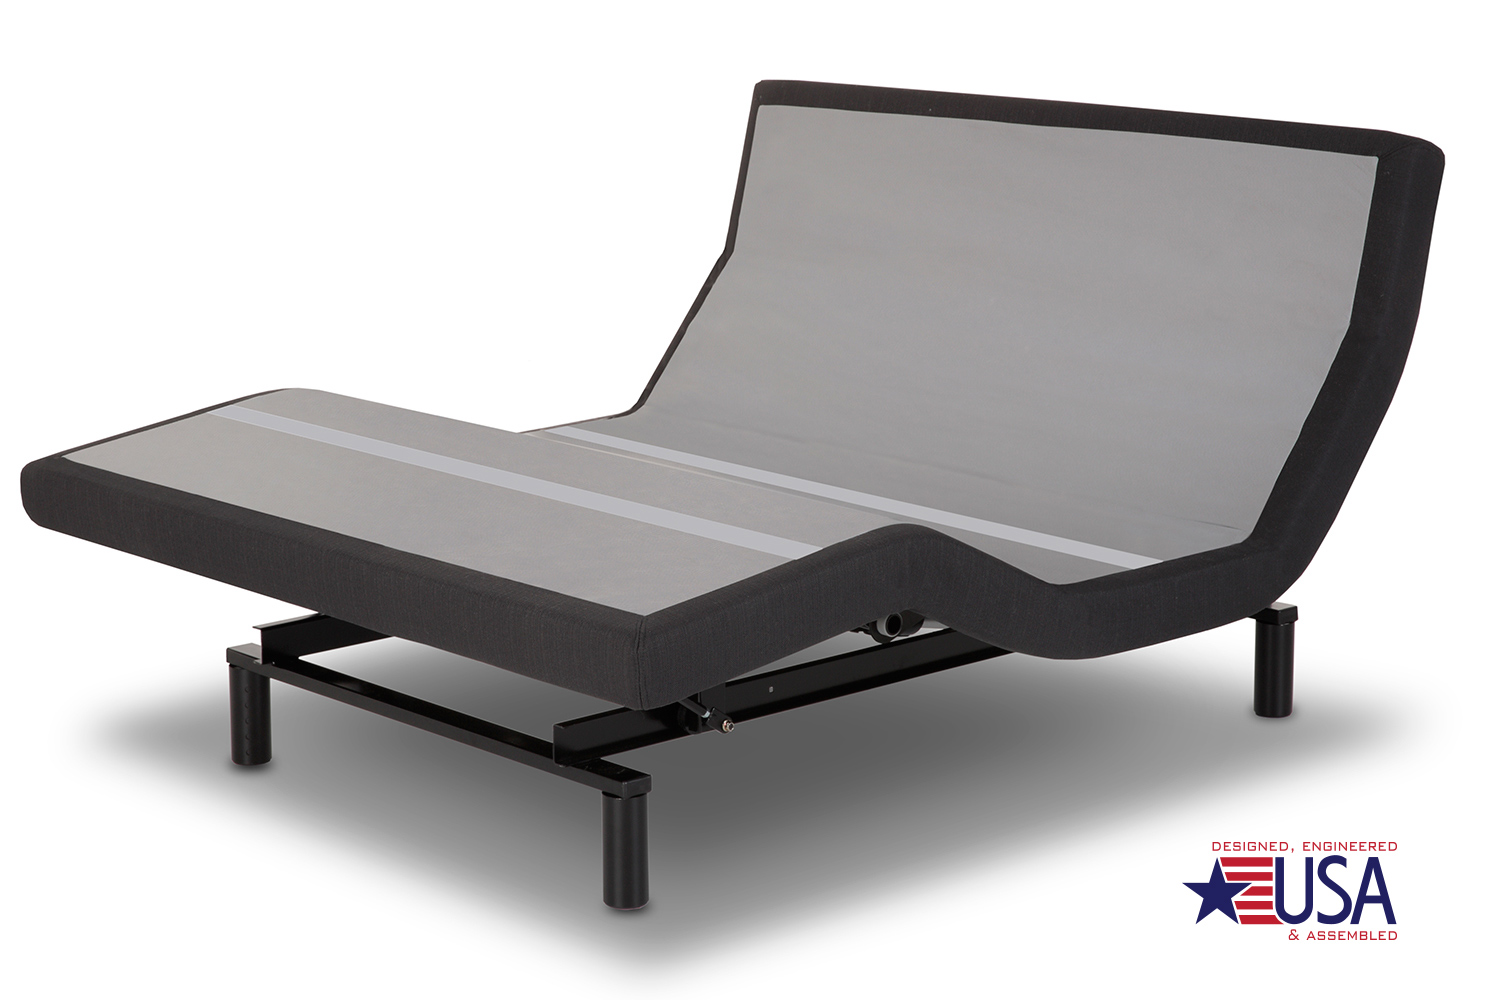 adjustable beds main image for prodigy 2.0 adjustable bed base ECTSQYD